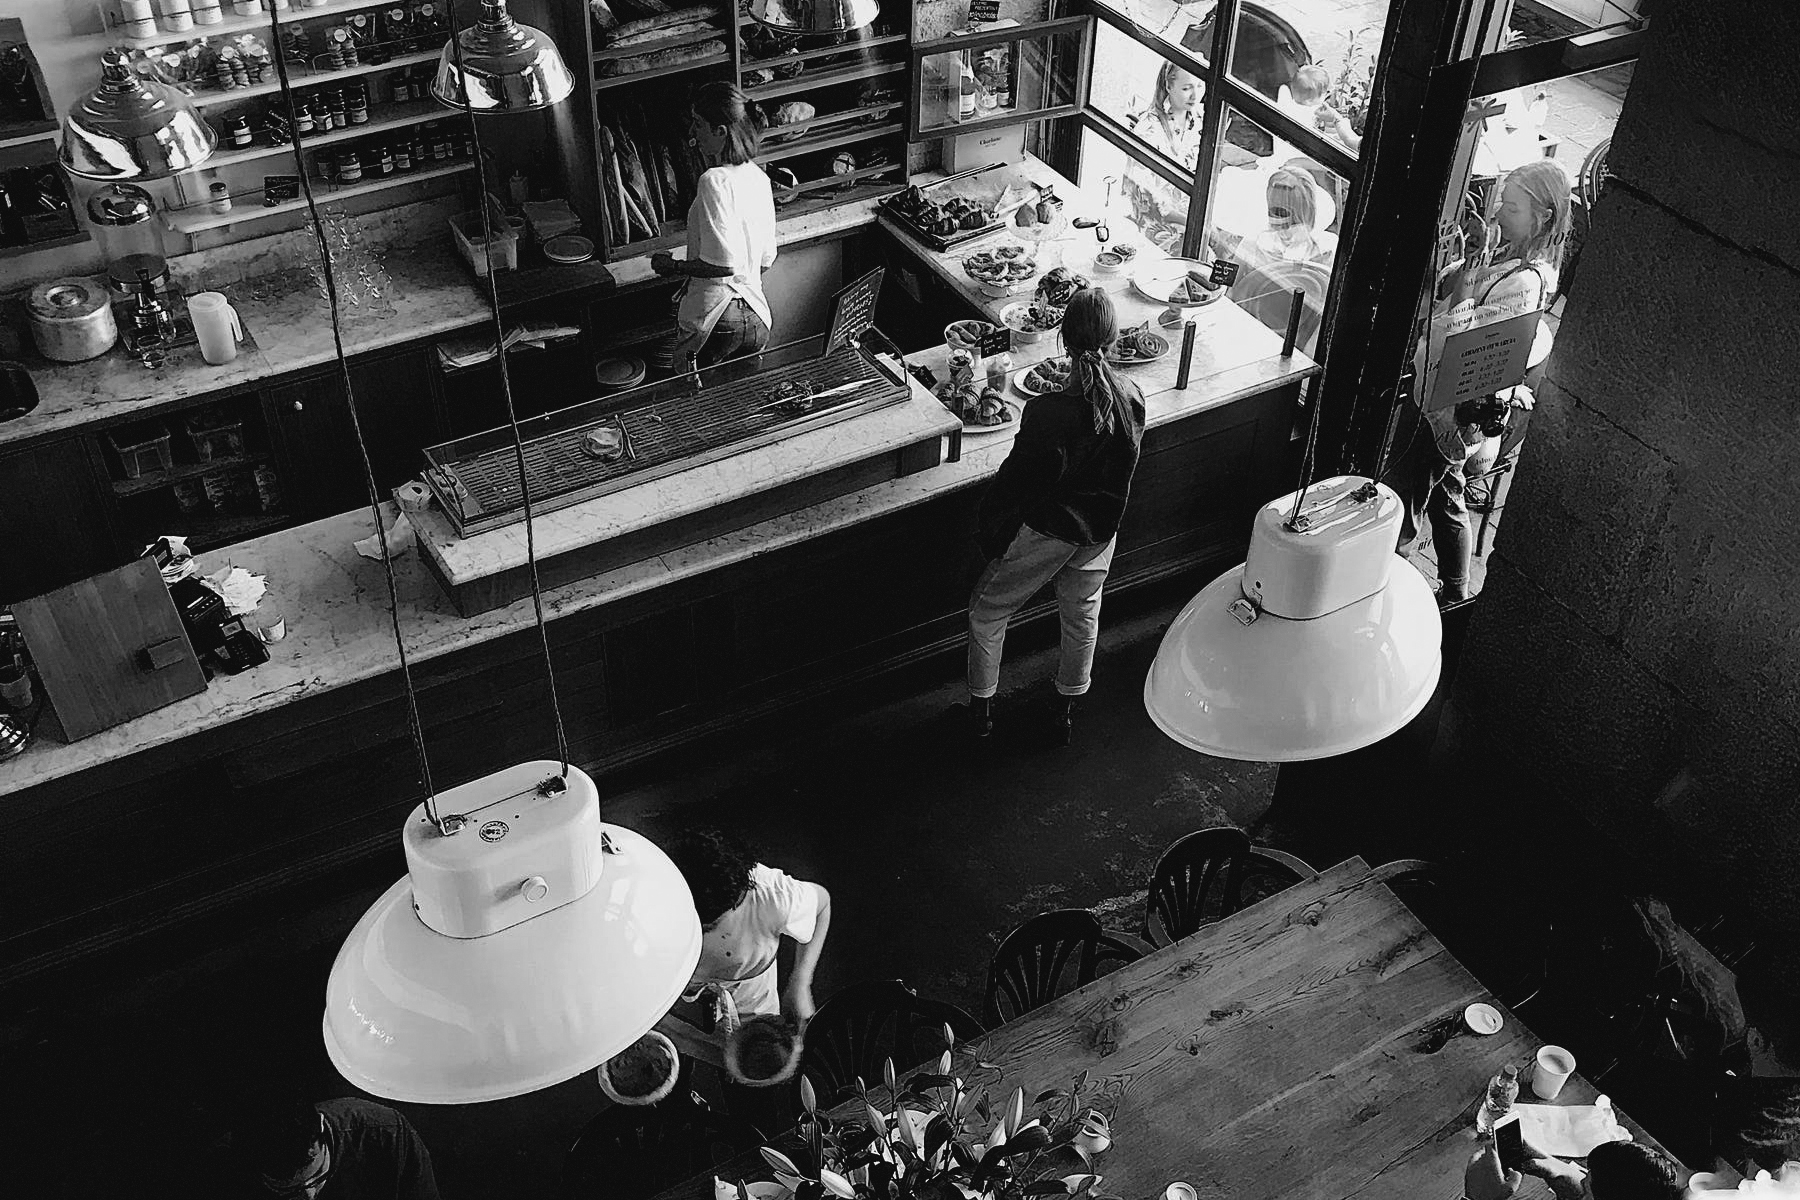 A cafe with people inside drinking coffee and a working serviing customers